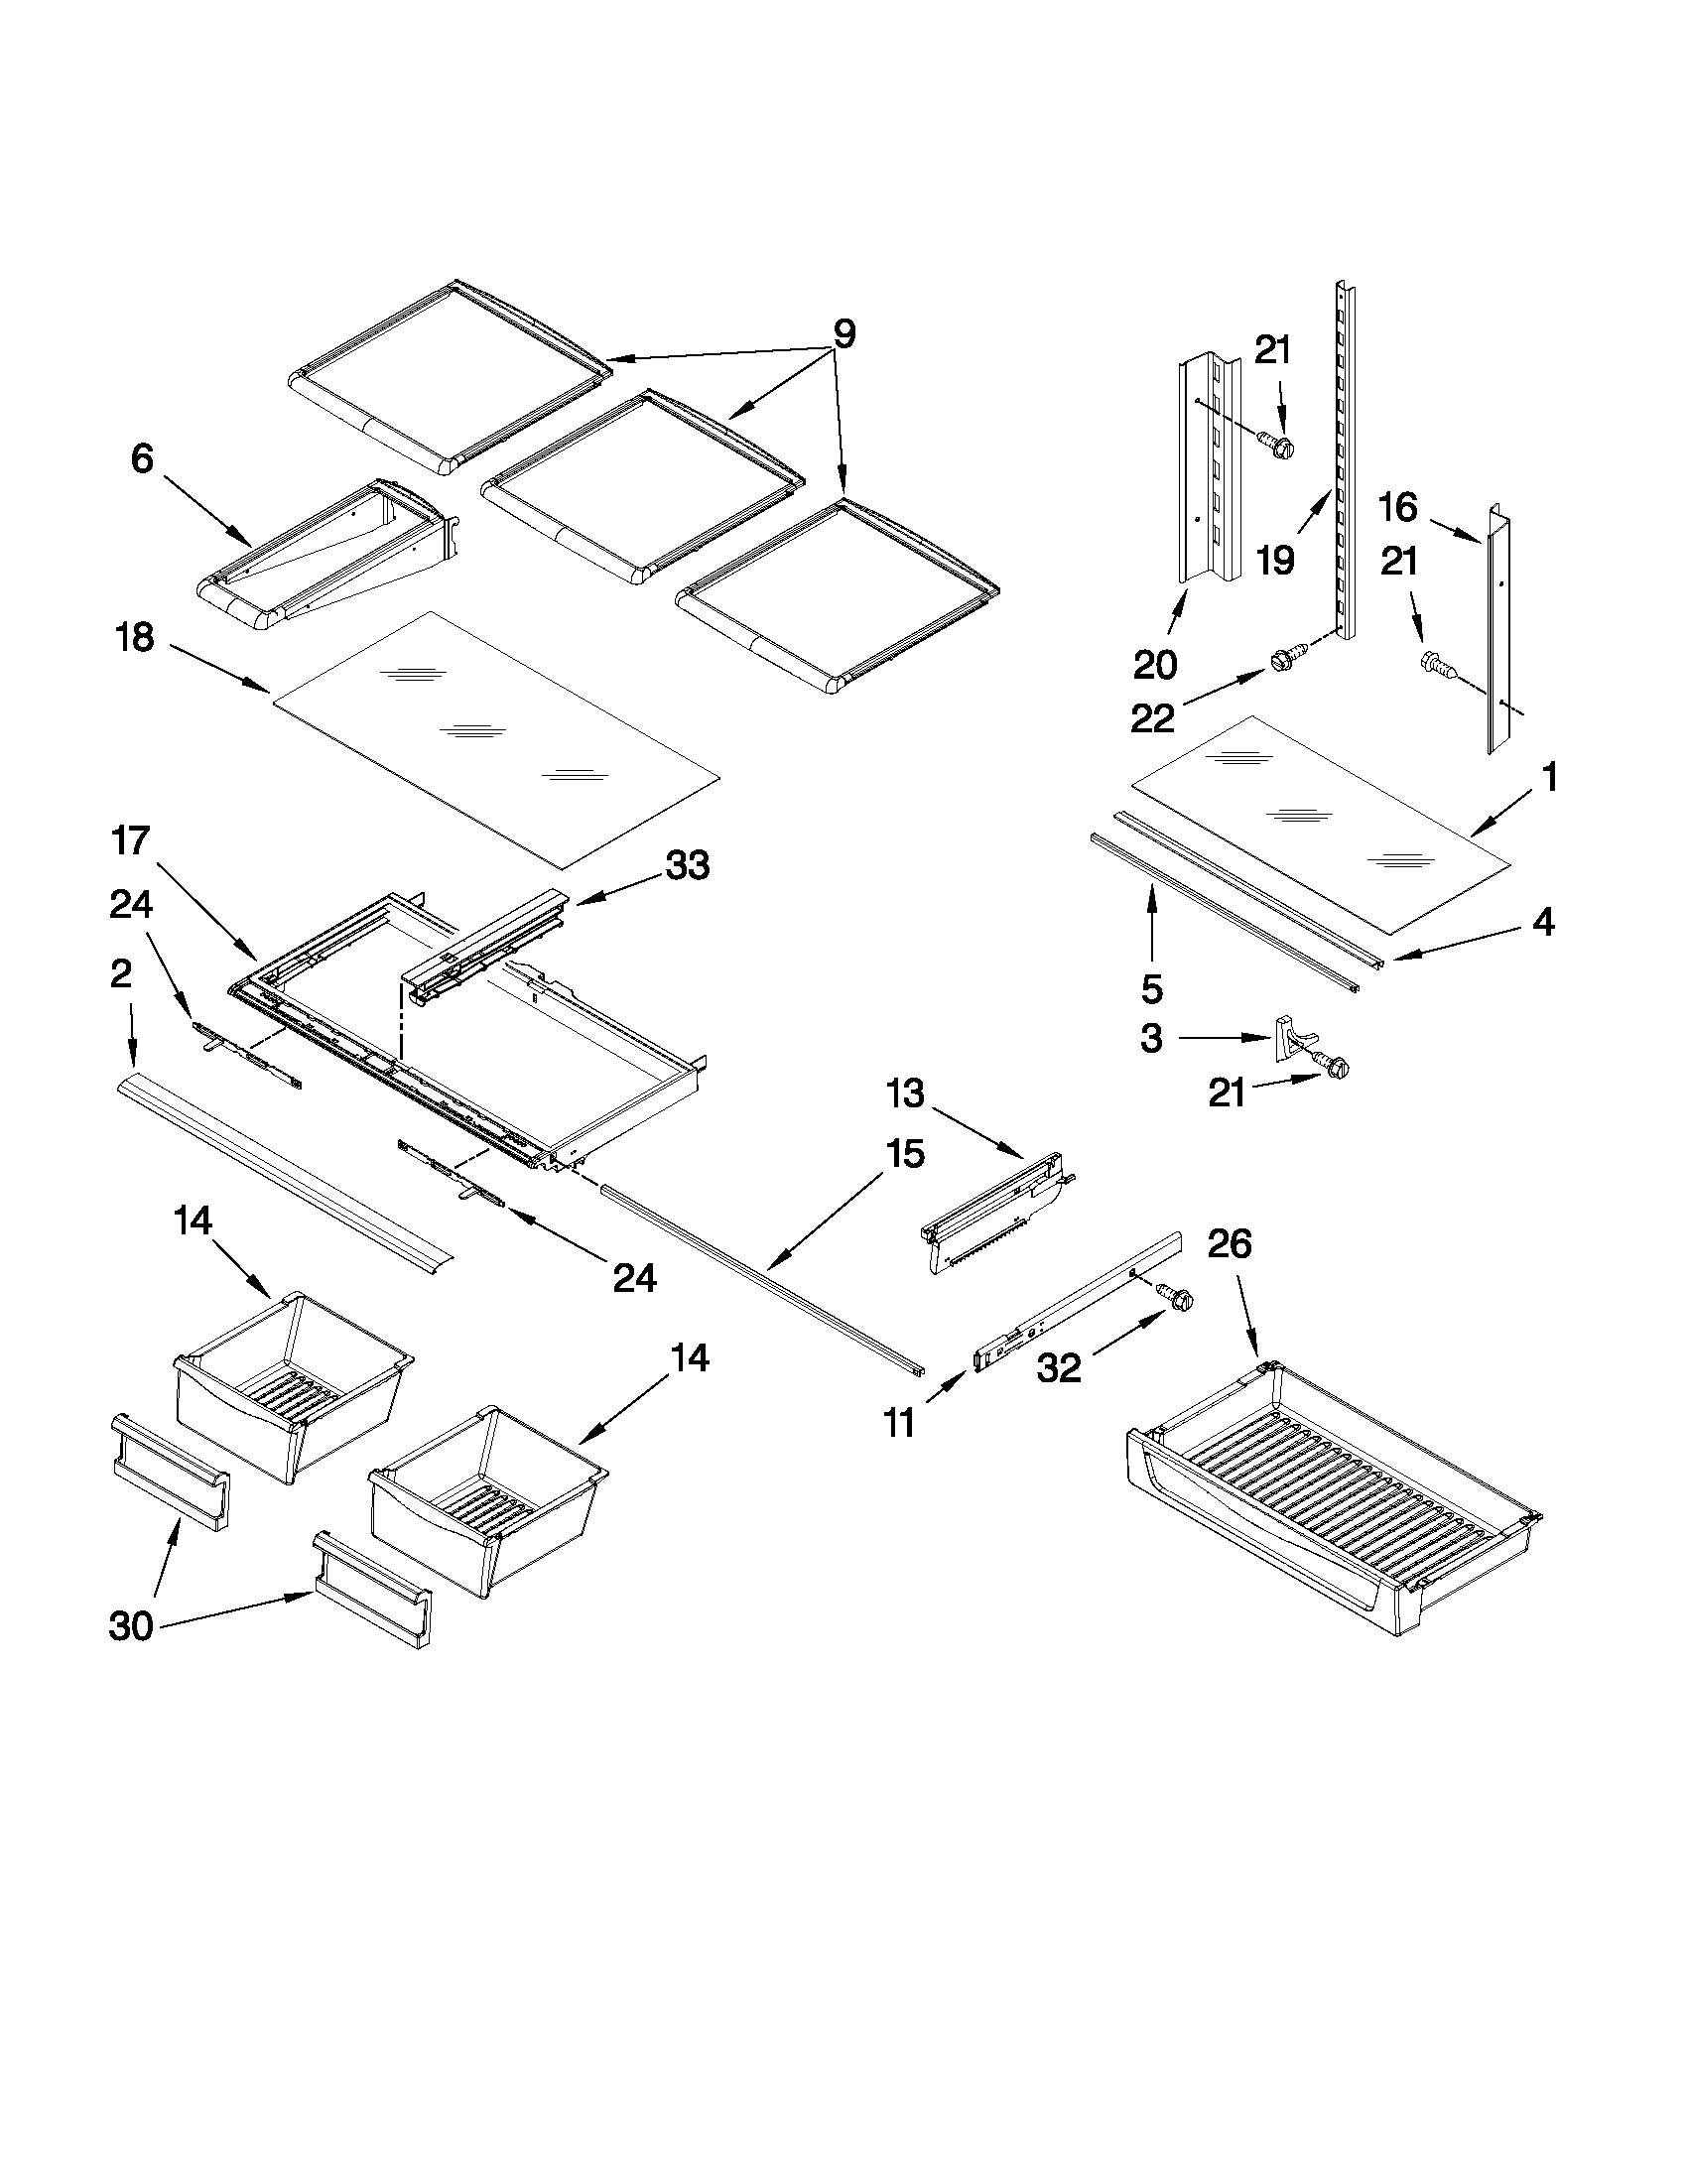 SHELF PARTS Diagram & Parts List for Model mfi2569yeb0